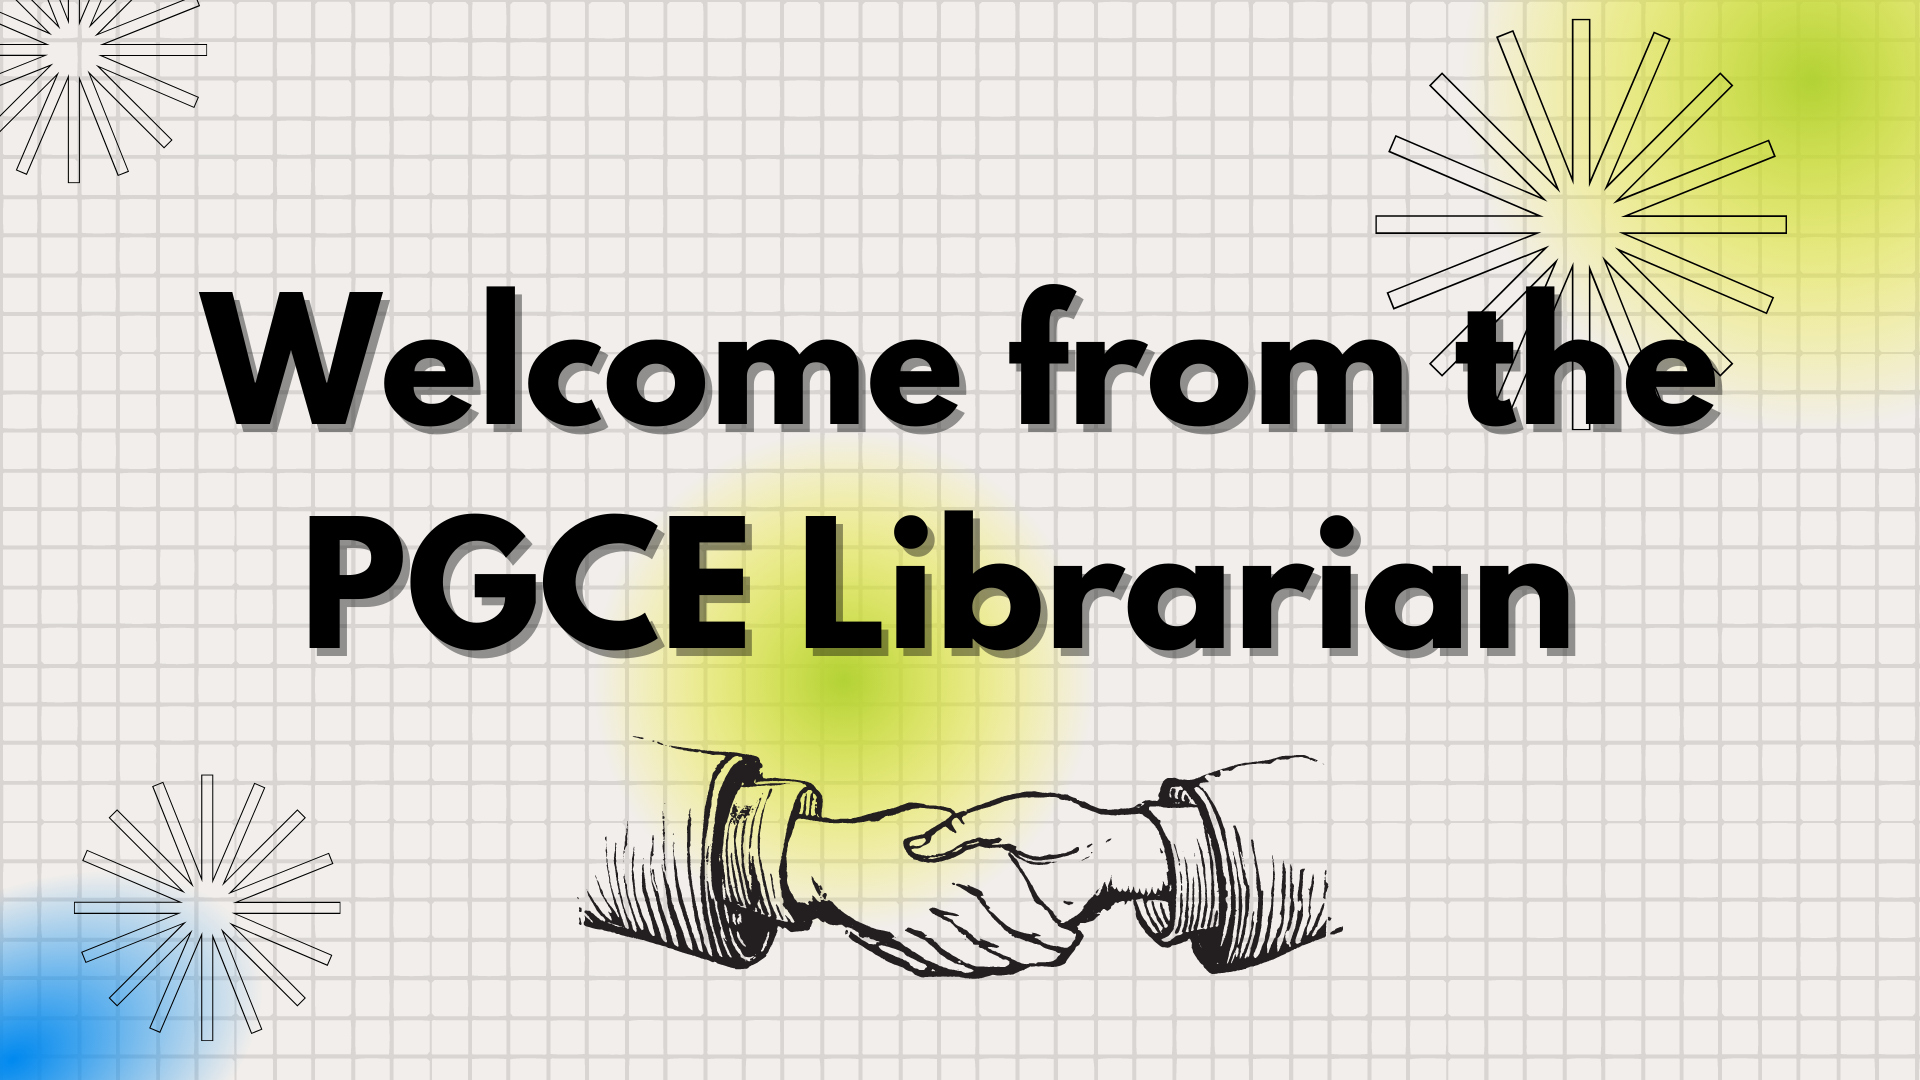 Link to the video welcome from Adele education librarian